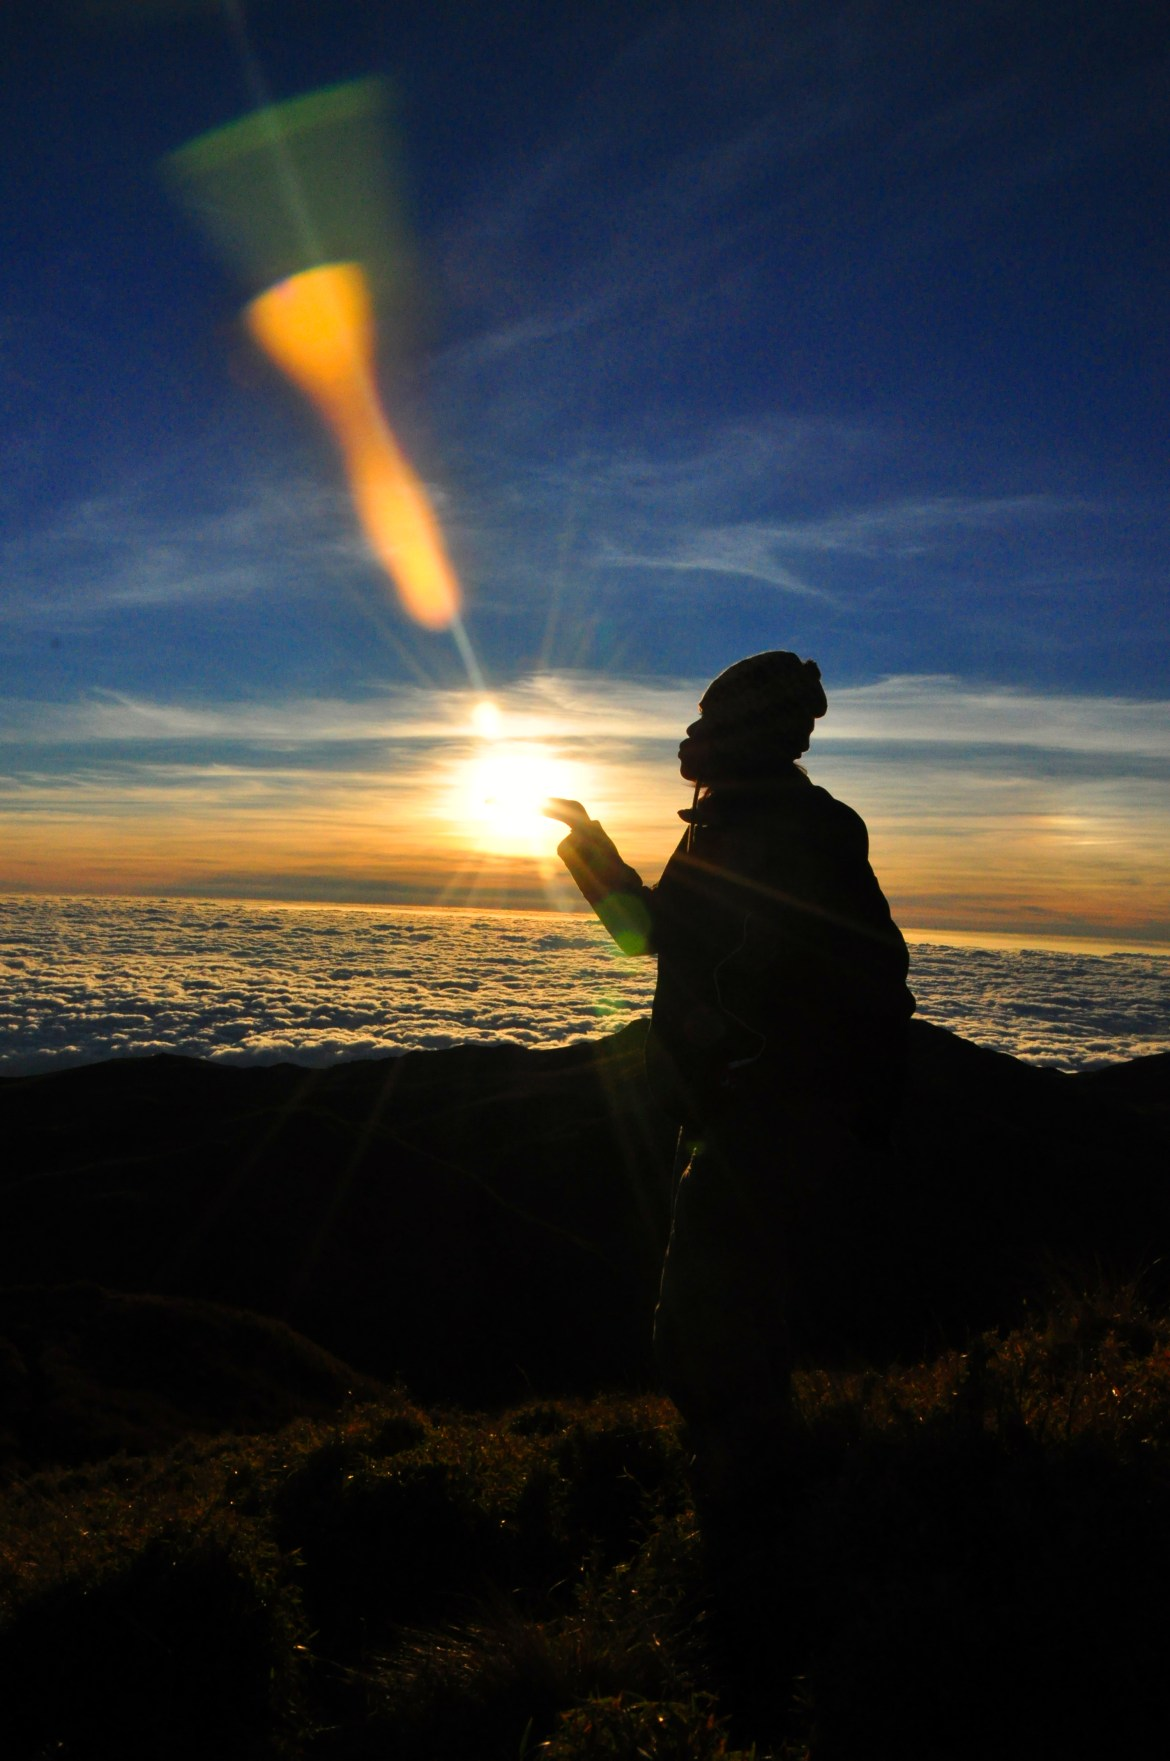 Life in Mt. Pulag by Janine Guadez